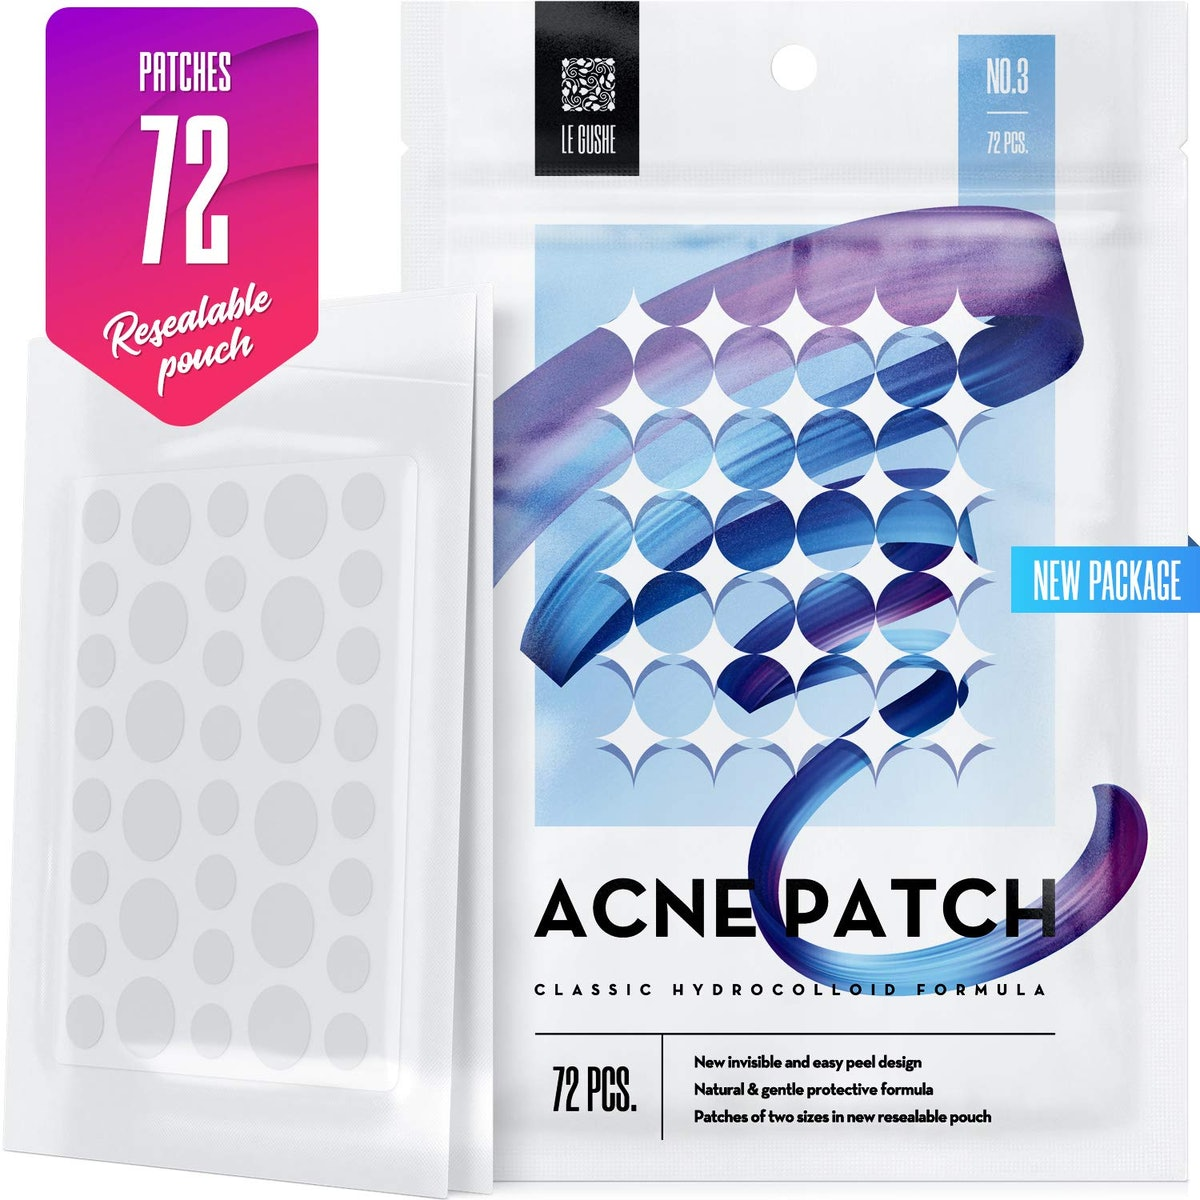 Le Gushe Acne Pimple Master Patch